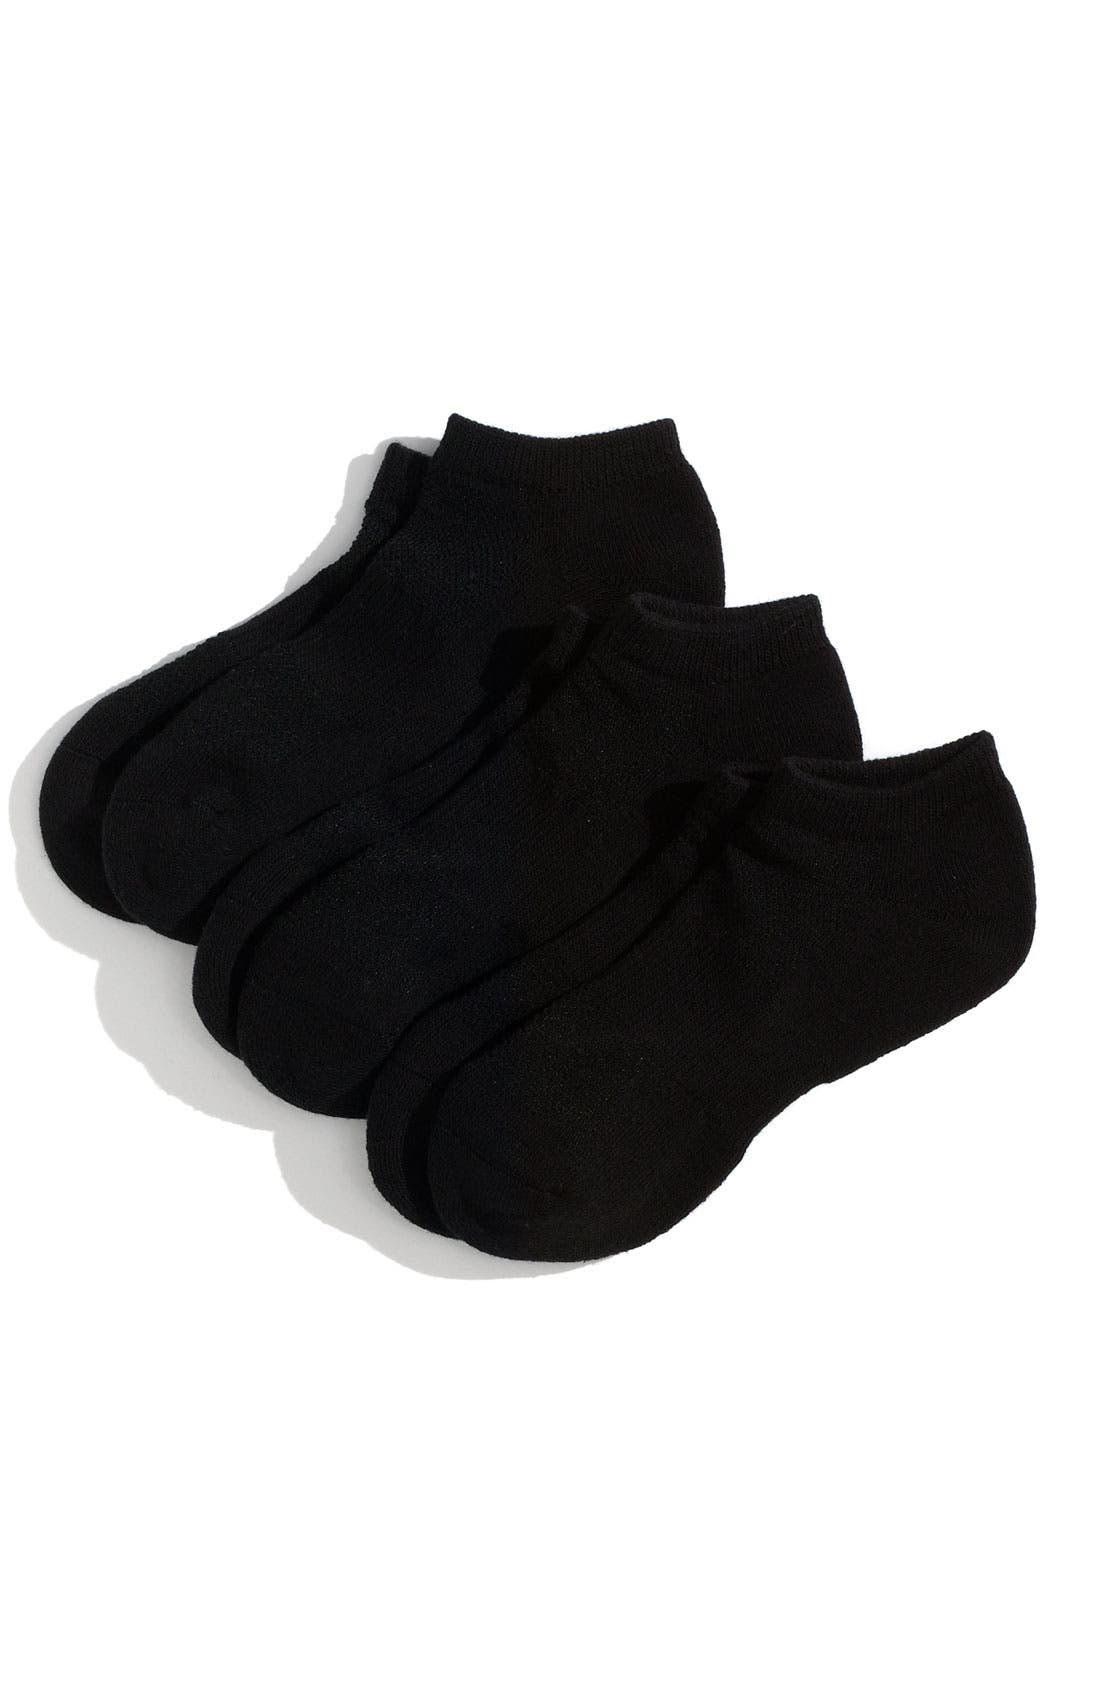 Main Image - Nordstrom Low Cut Active Socks (3-Pack)(Toddler, Little Boys & Big Boys)